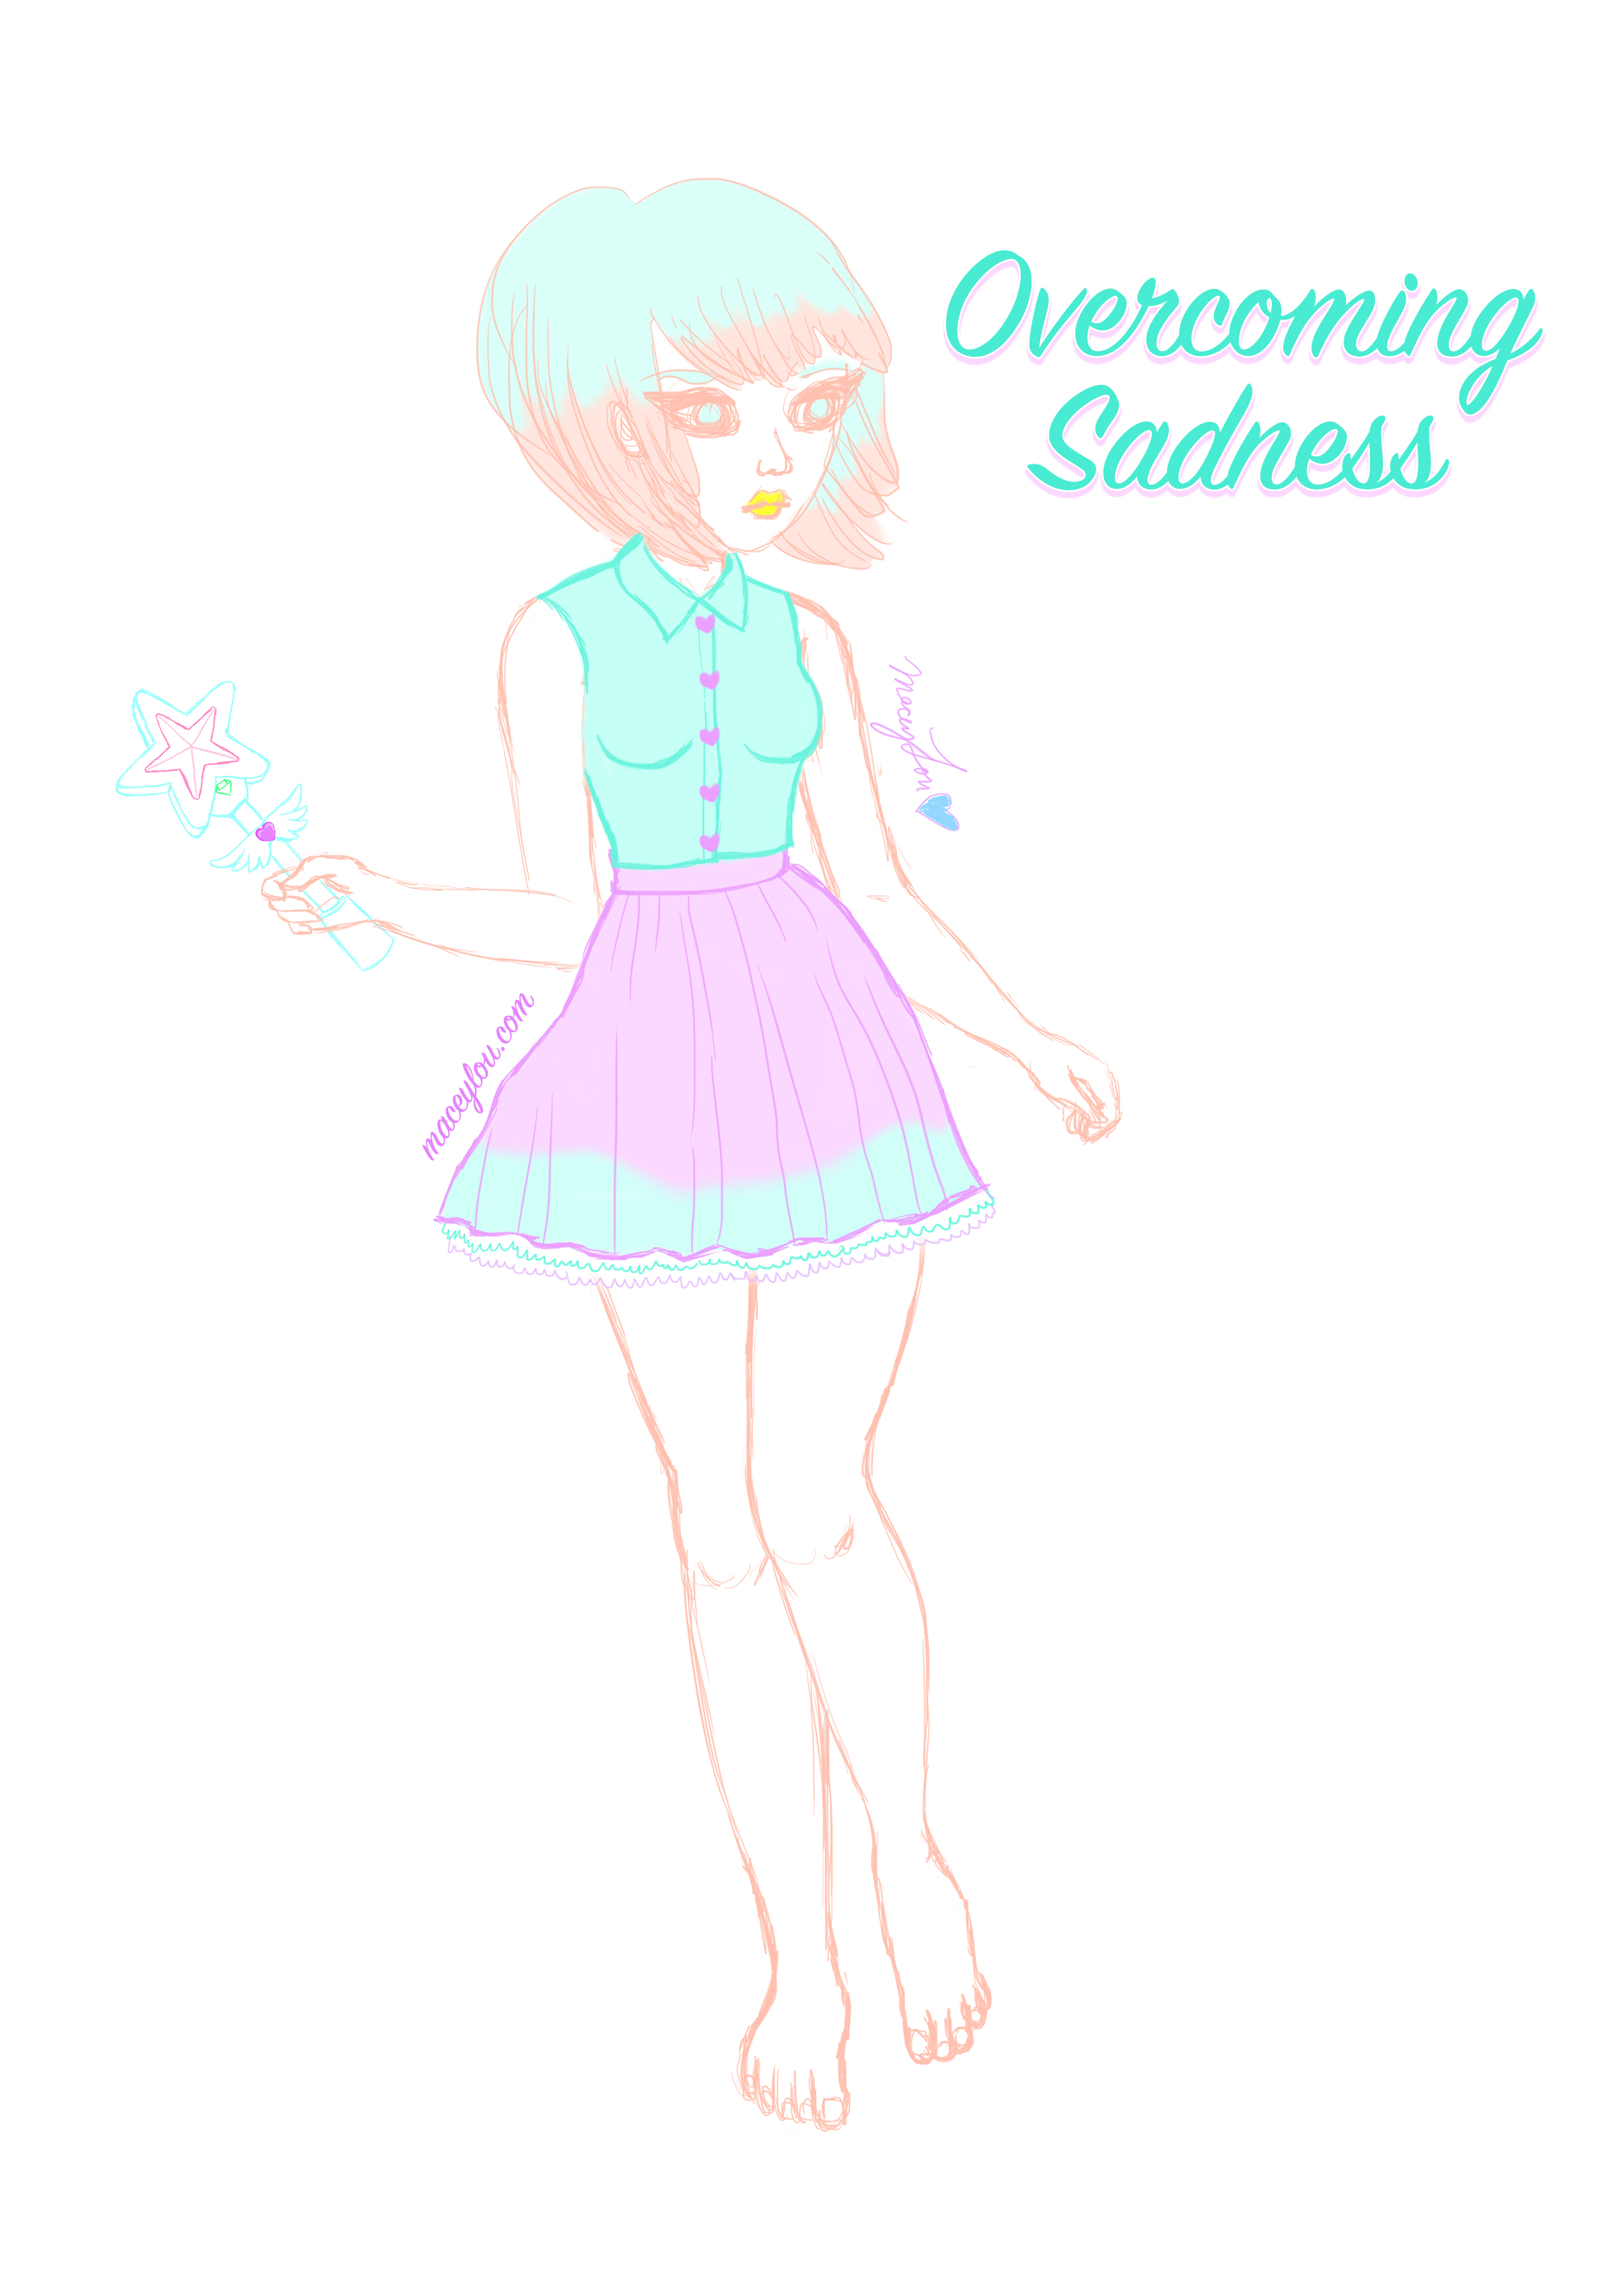 Kawaii girl overcoming sadness blog post image main maceylou illustration art.jpg